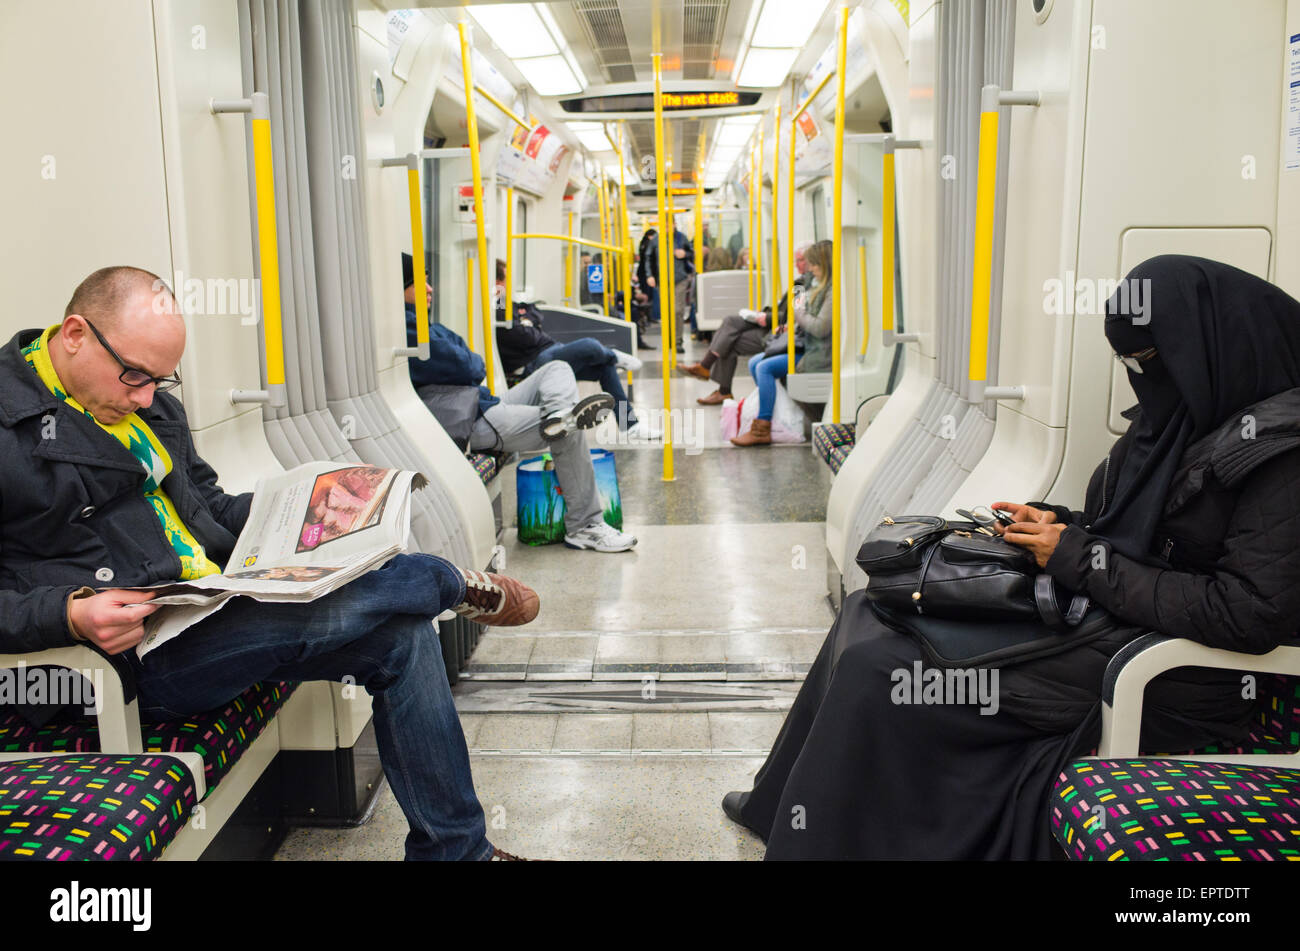 A woman in a burqa  on the London Overground in Britain Stock Photo